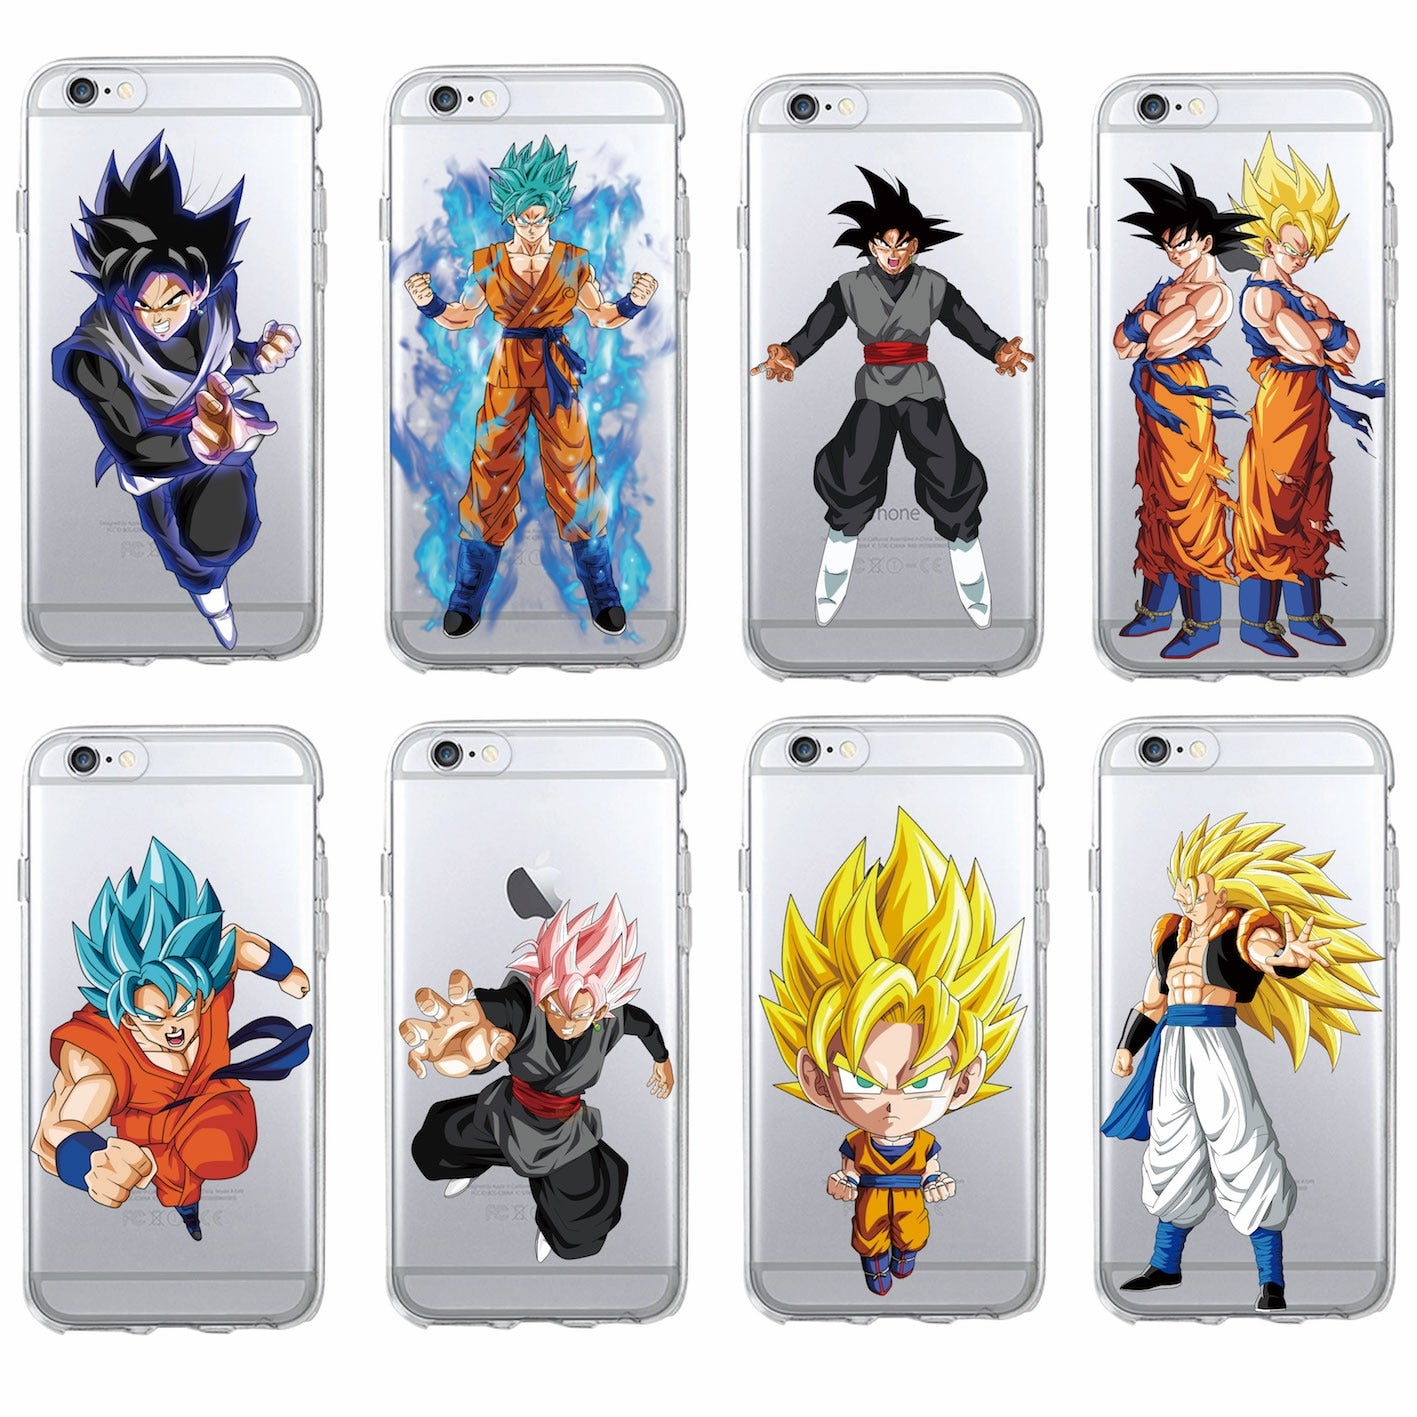 coque 20dragon 20ball 20z 20iphone 206 20plus 383cxt 1024x1024@2x